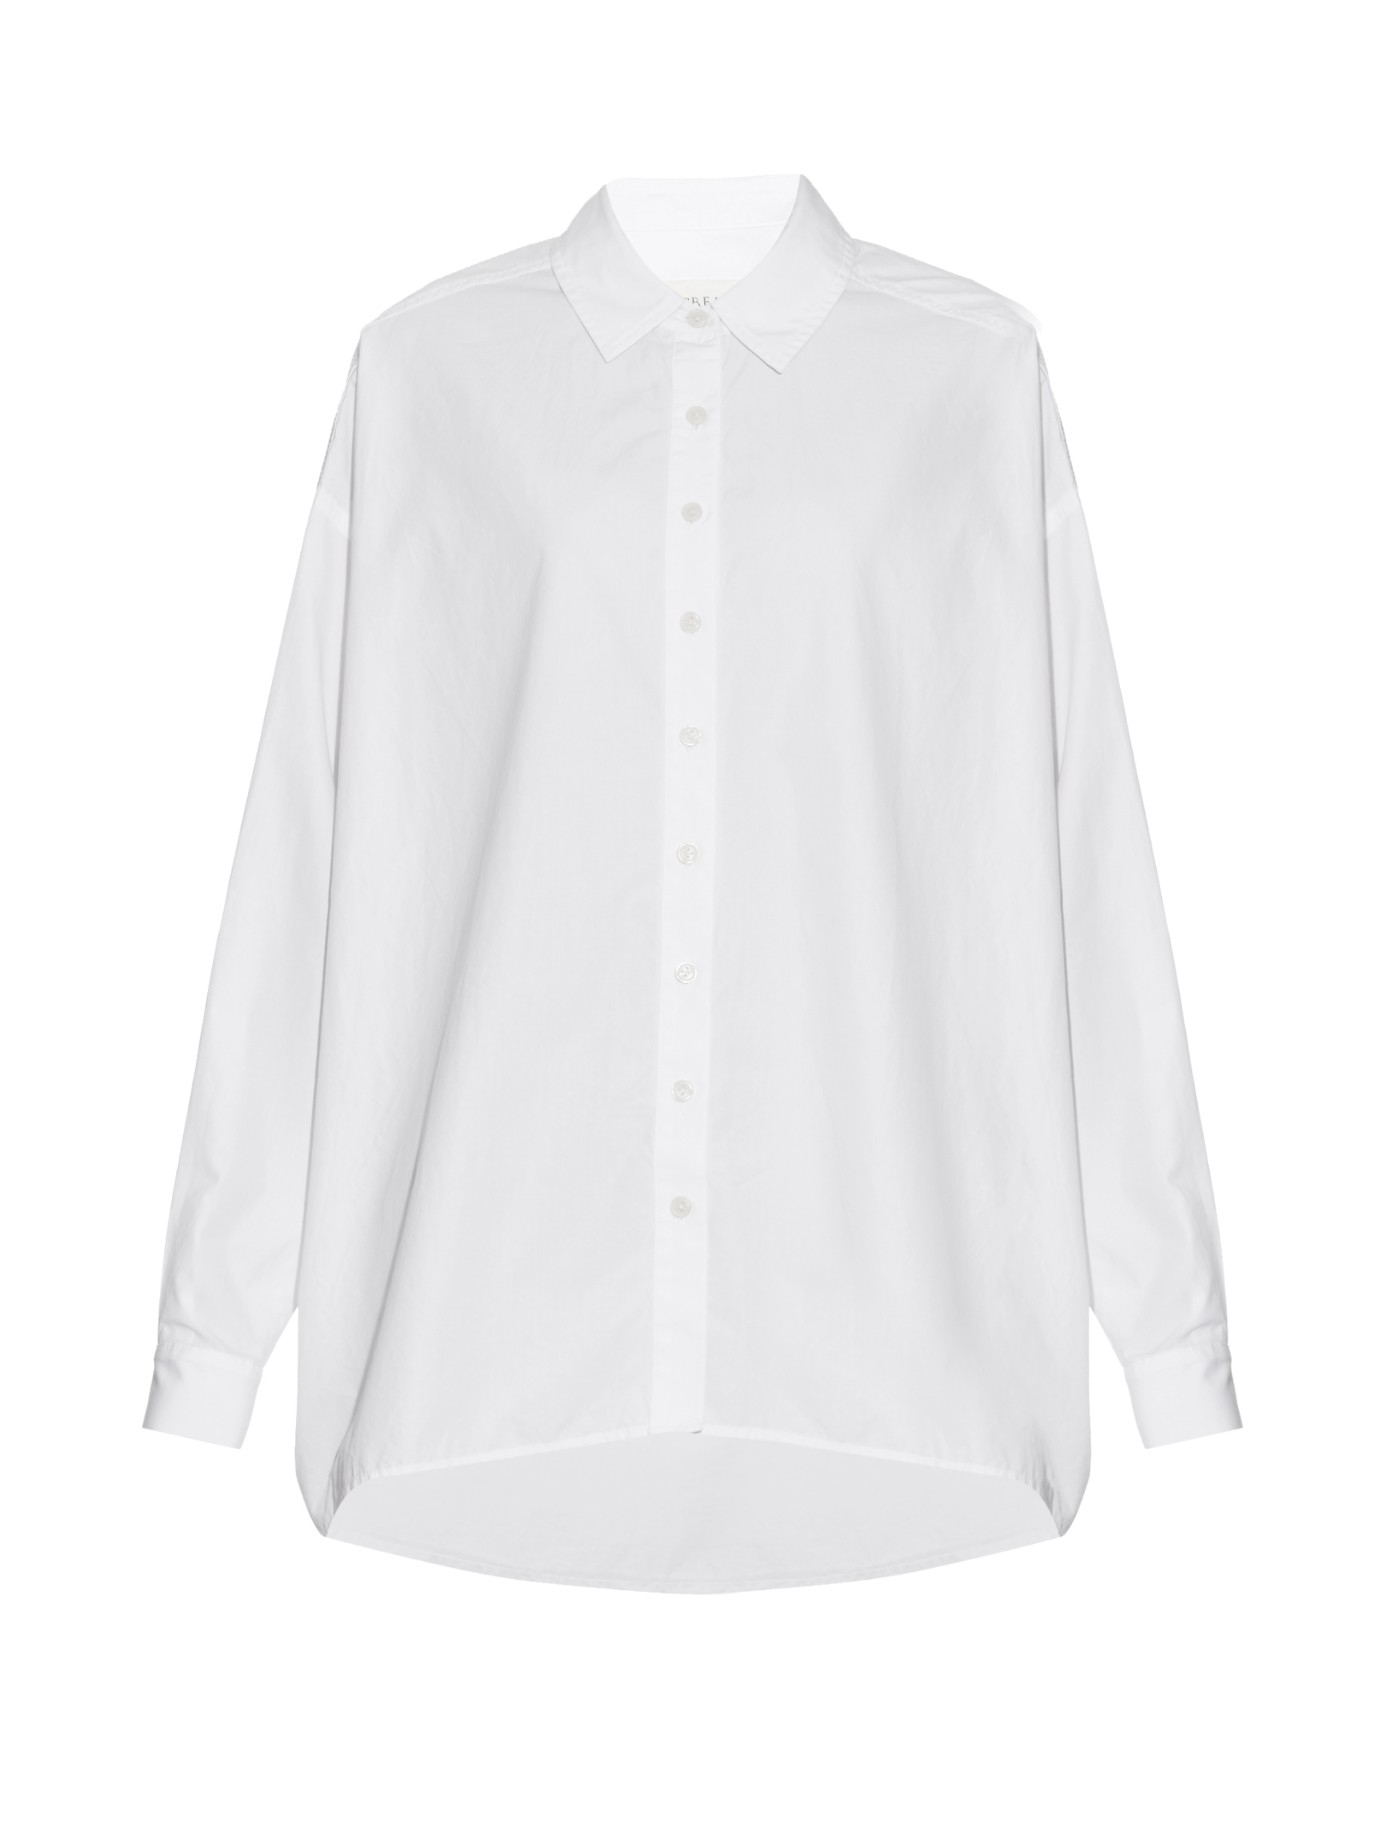 The Great The Big Cotton Poplin Shirt In White Lyst